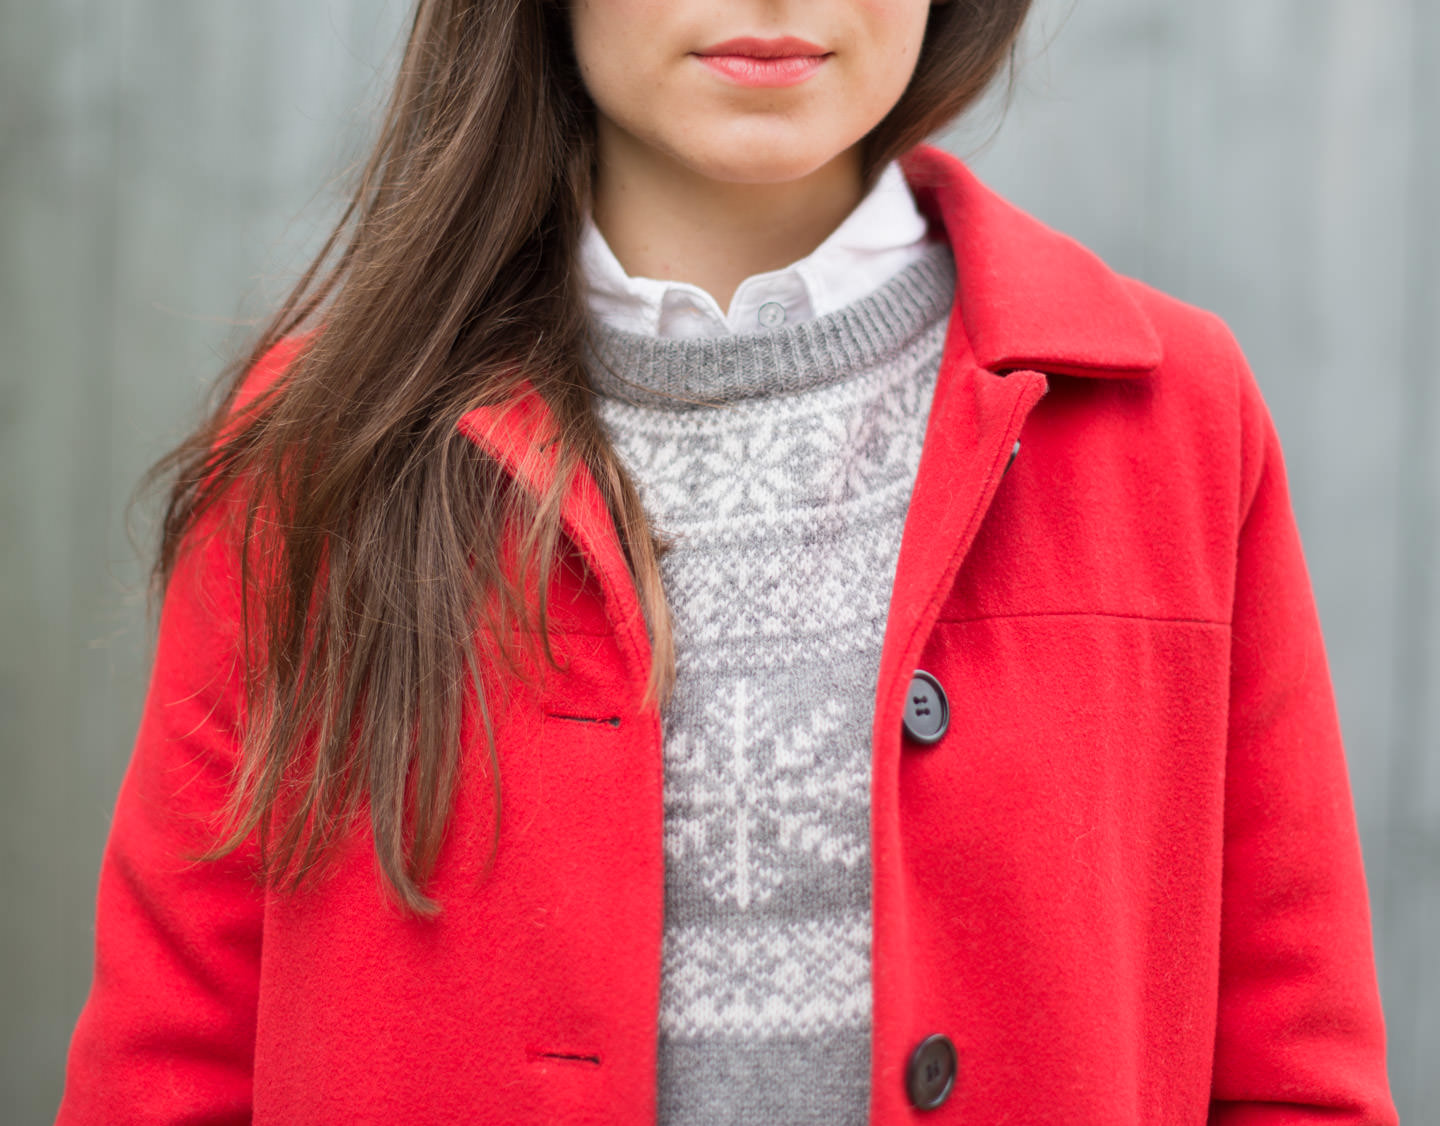 Blog-Mode-And-The-City-Lifestyle-Lifestyle-5-petites-choses-161-gris-rouge